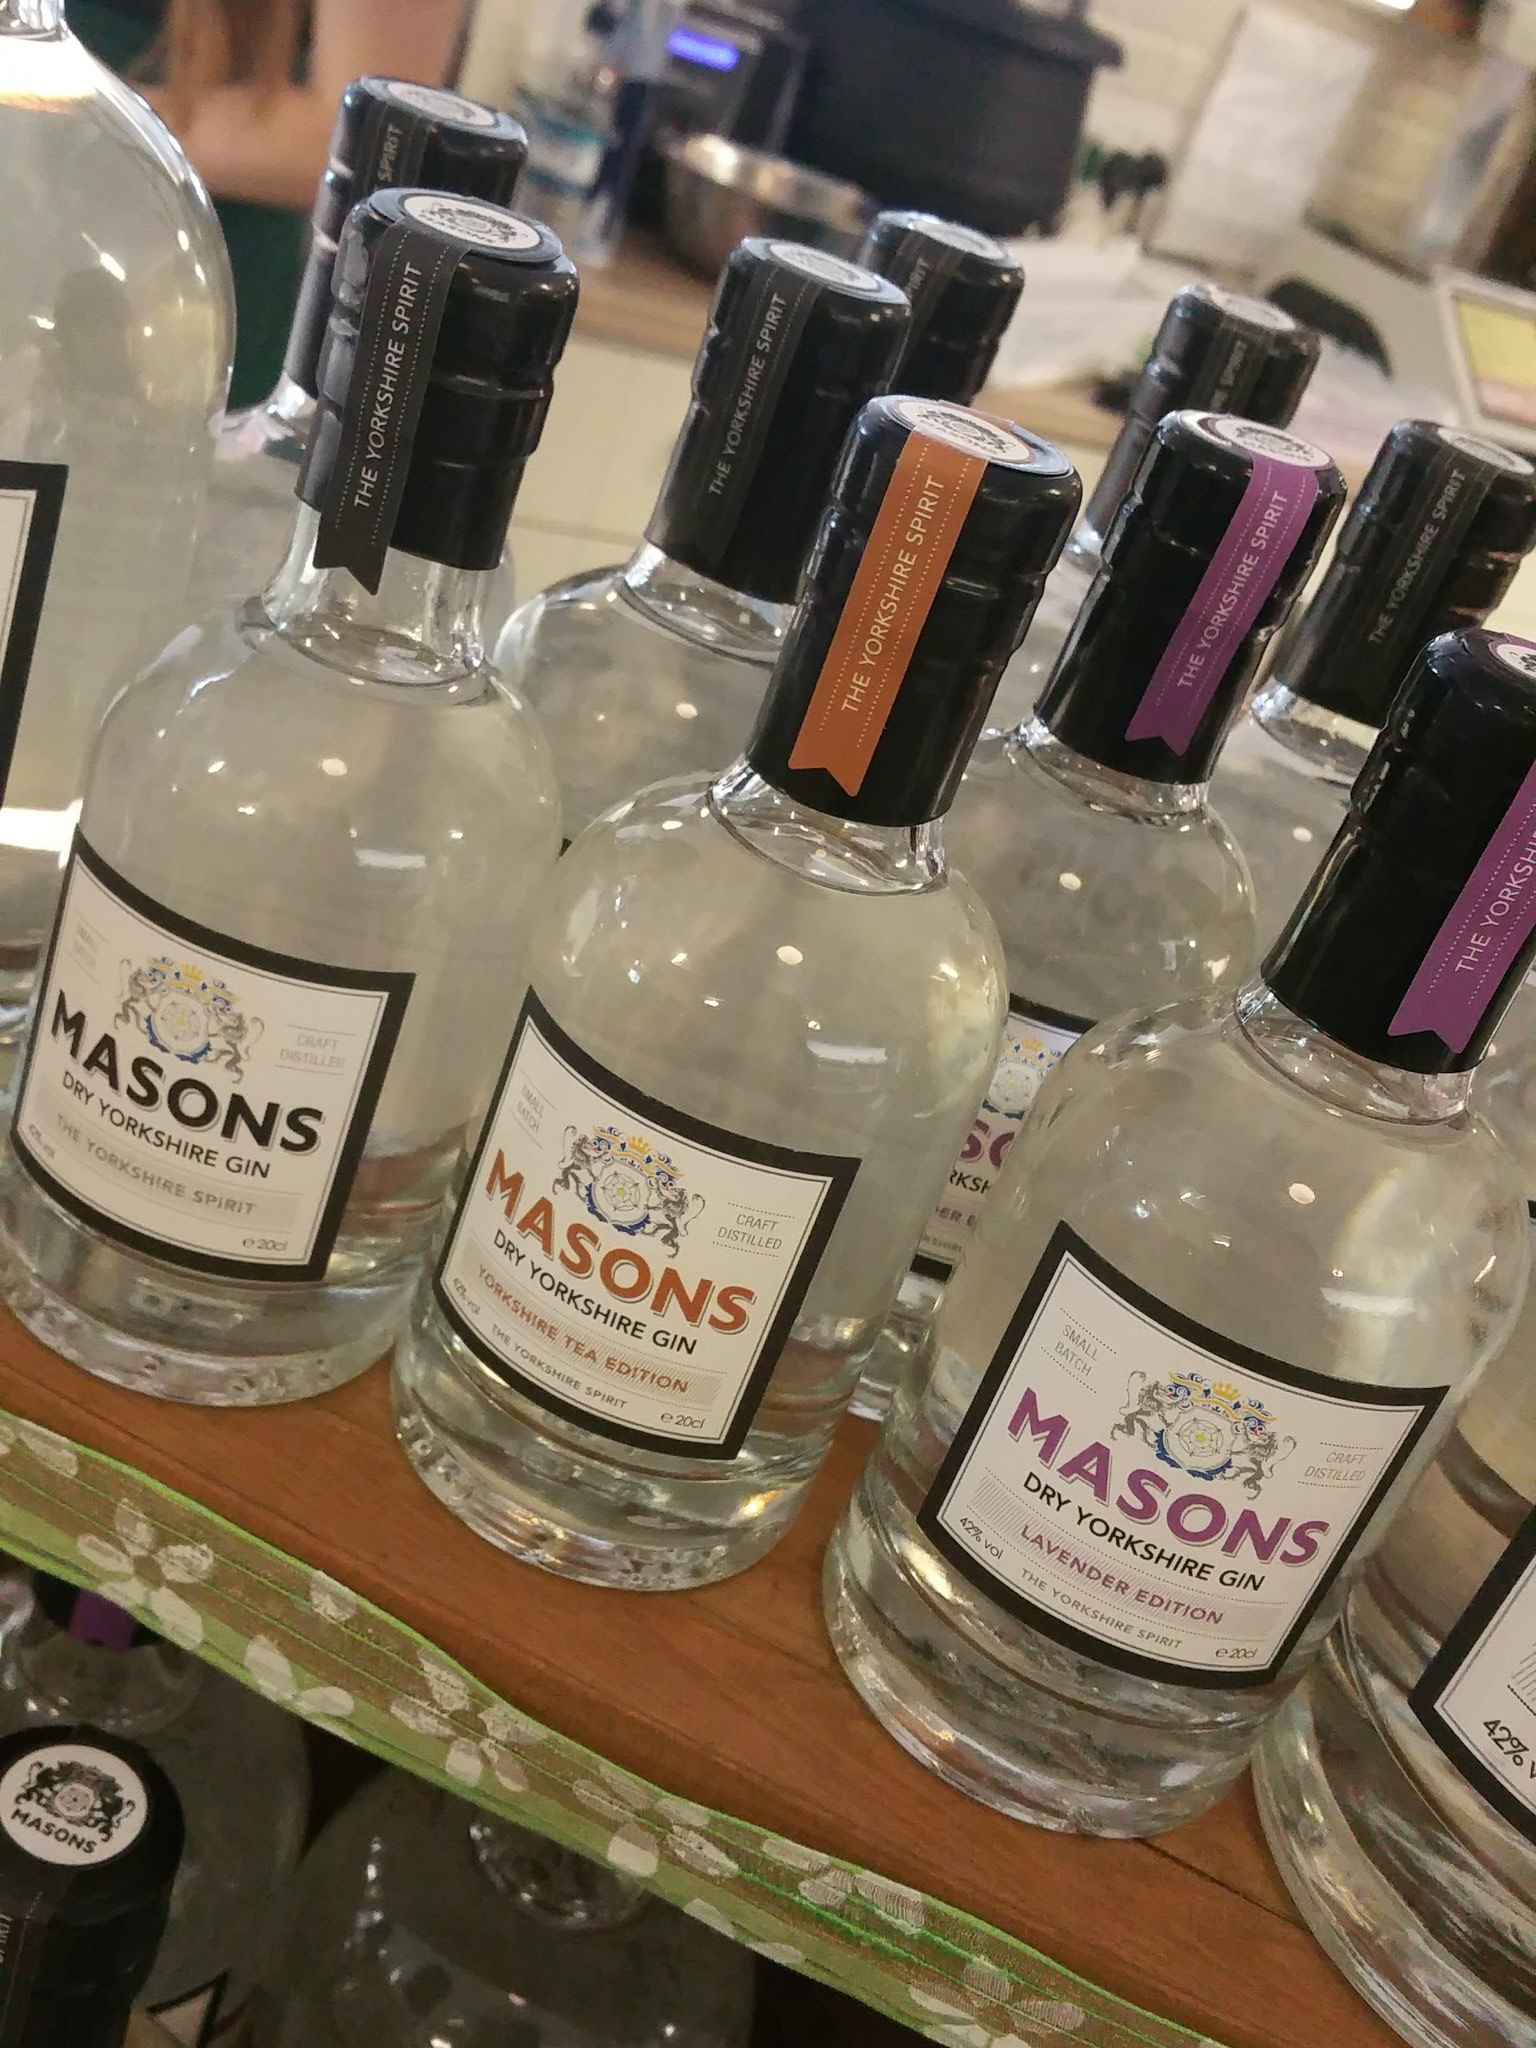 I'm @AlbionFarm_Shop today with @YorkshireGin - come say hello and try some if you haven't already! https://t.co/dU0gRuSOUv